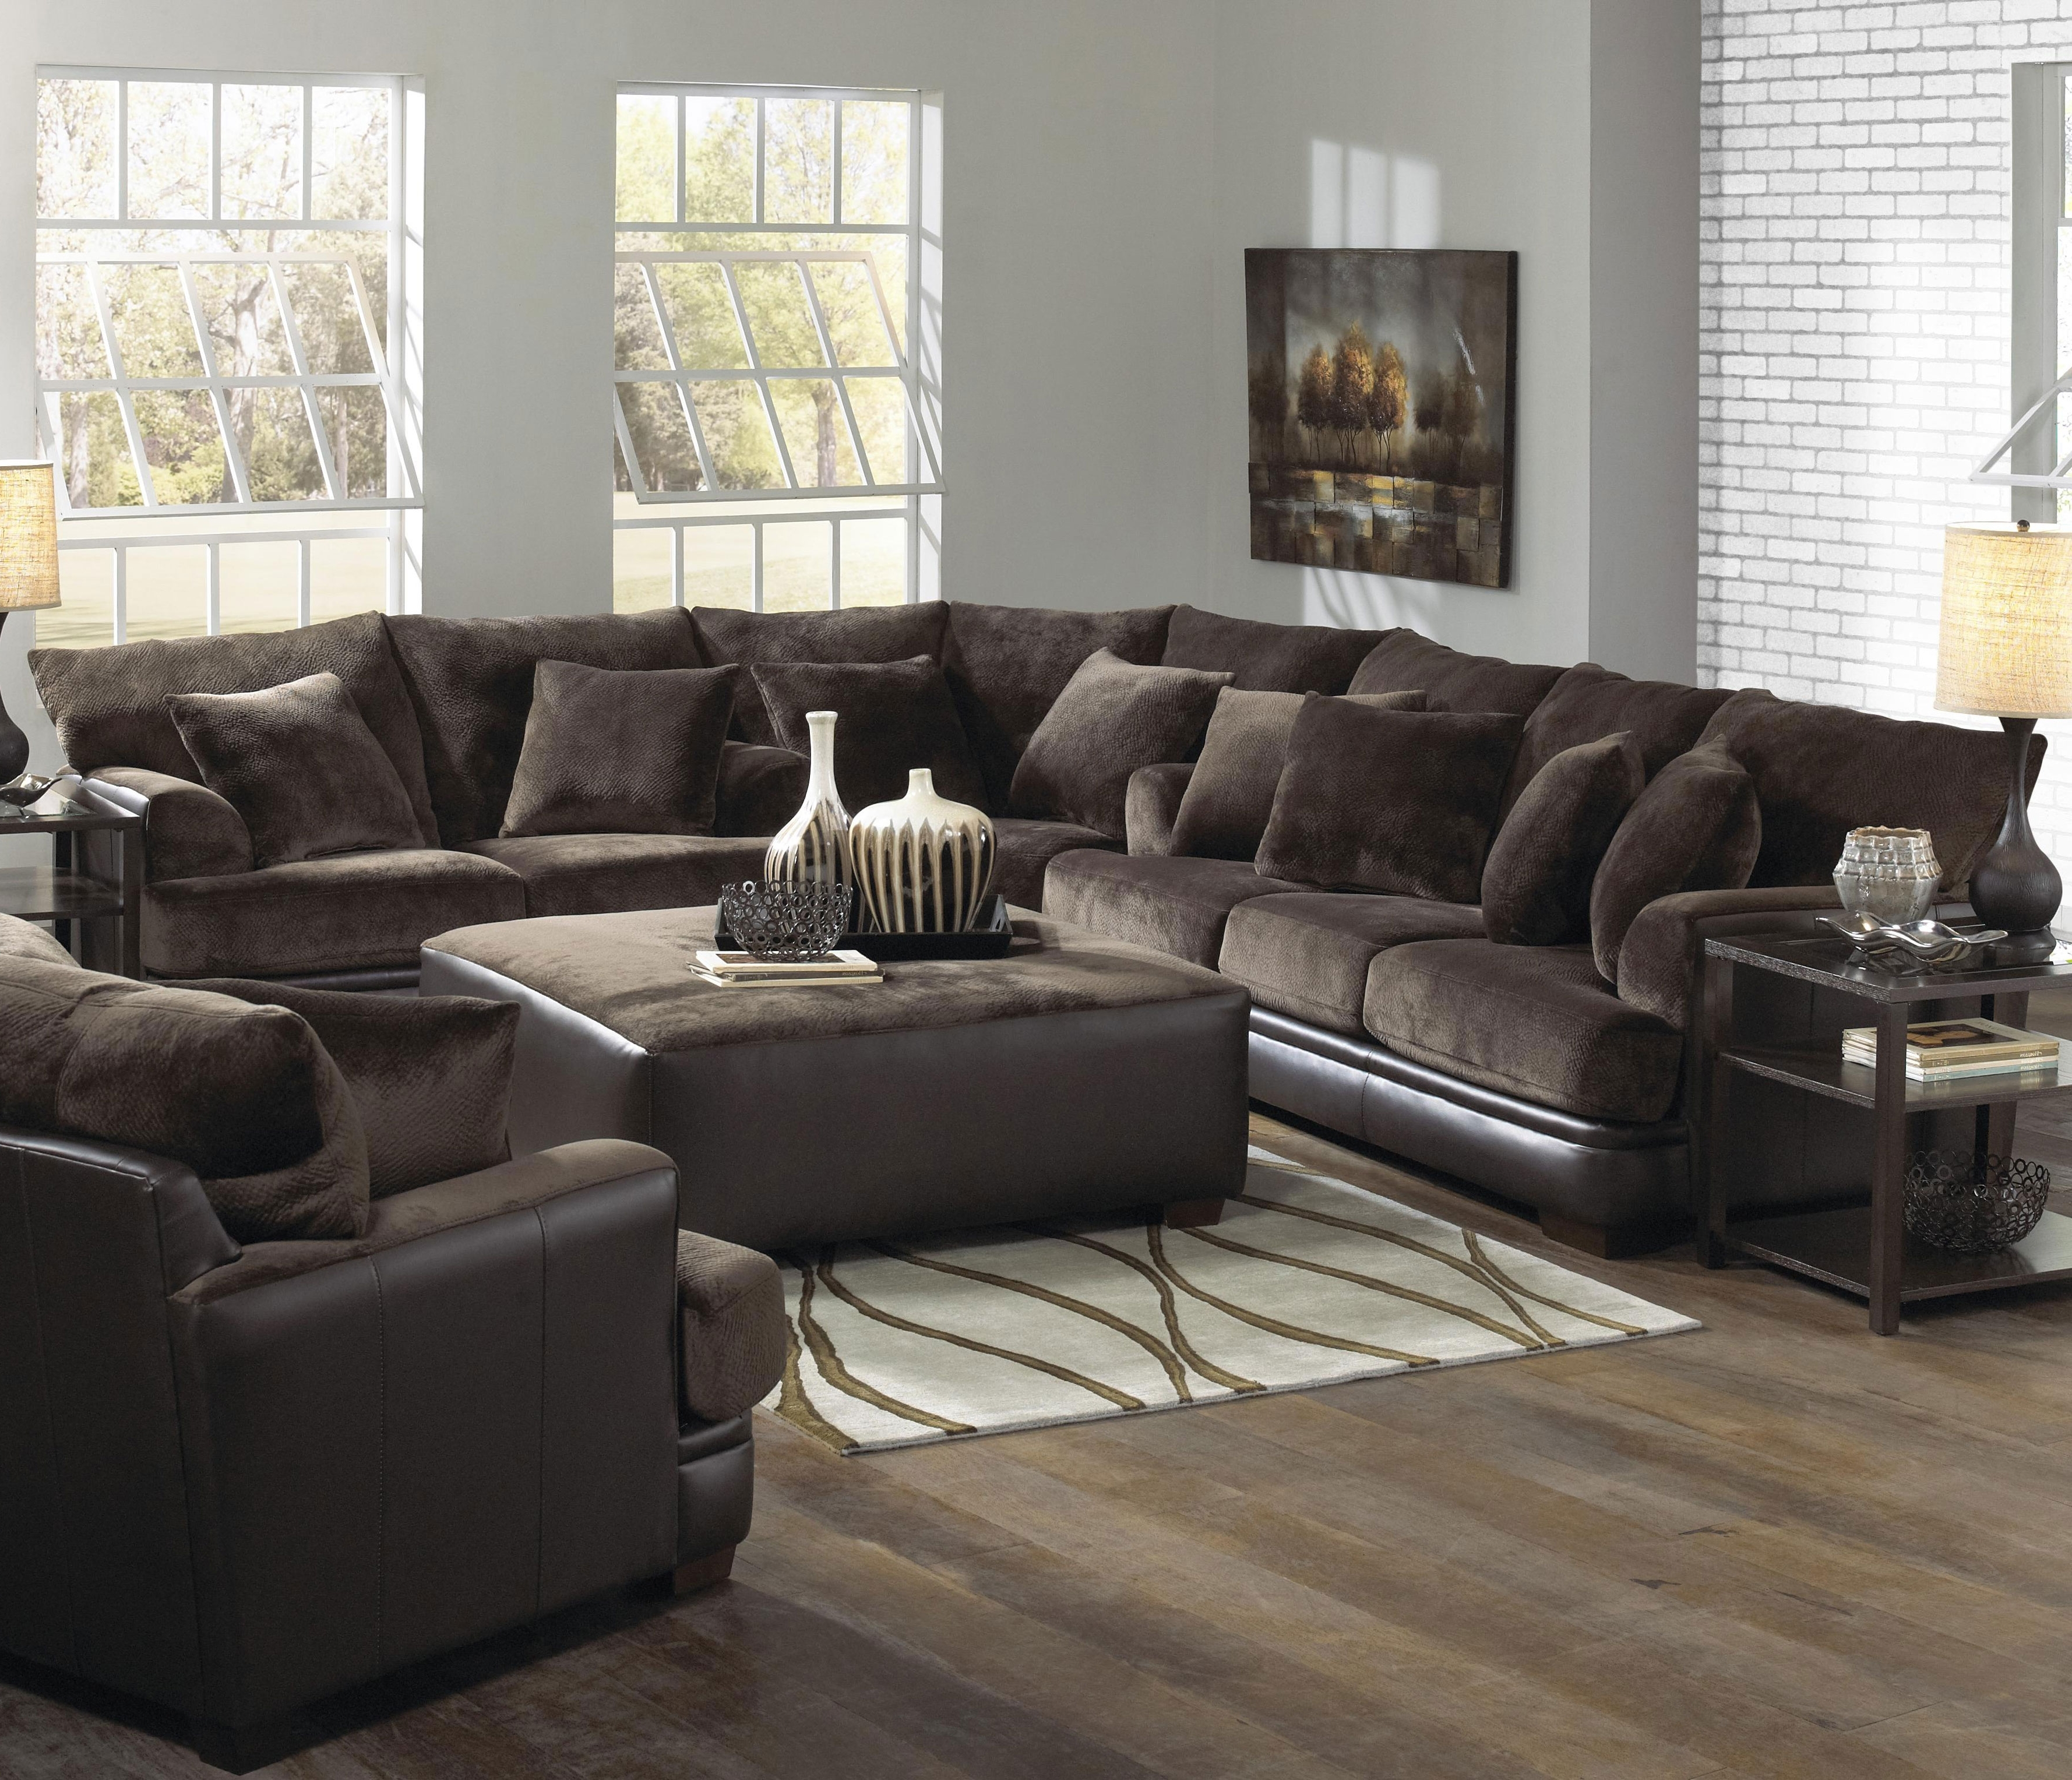 C Shaped Sofas Throughout Recent Sectional Sofa: The Best Design C Shaped Sofa Sectional C Shaped (View 9 of 20)